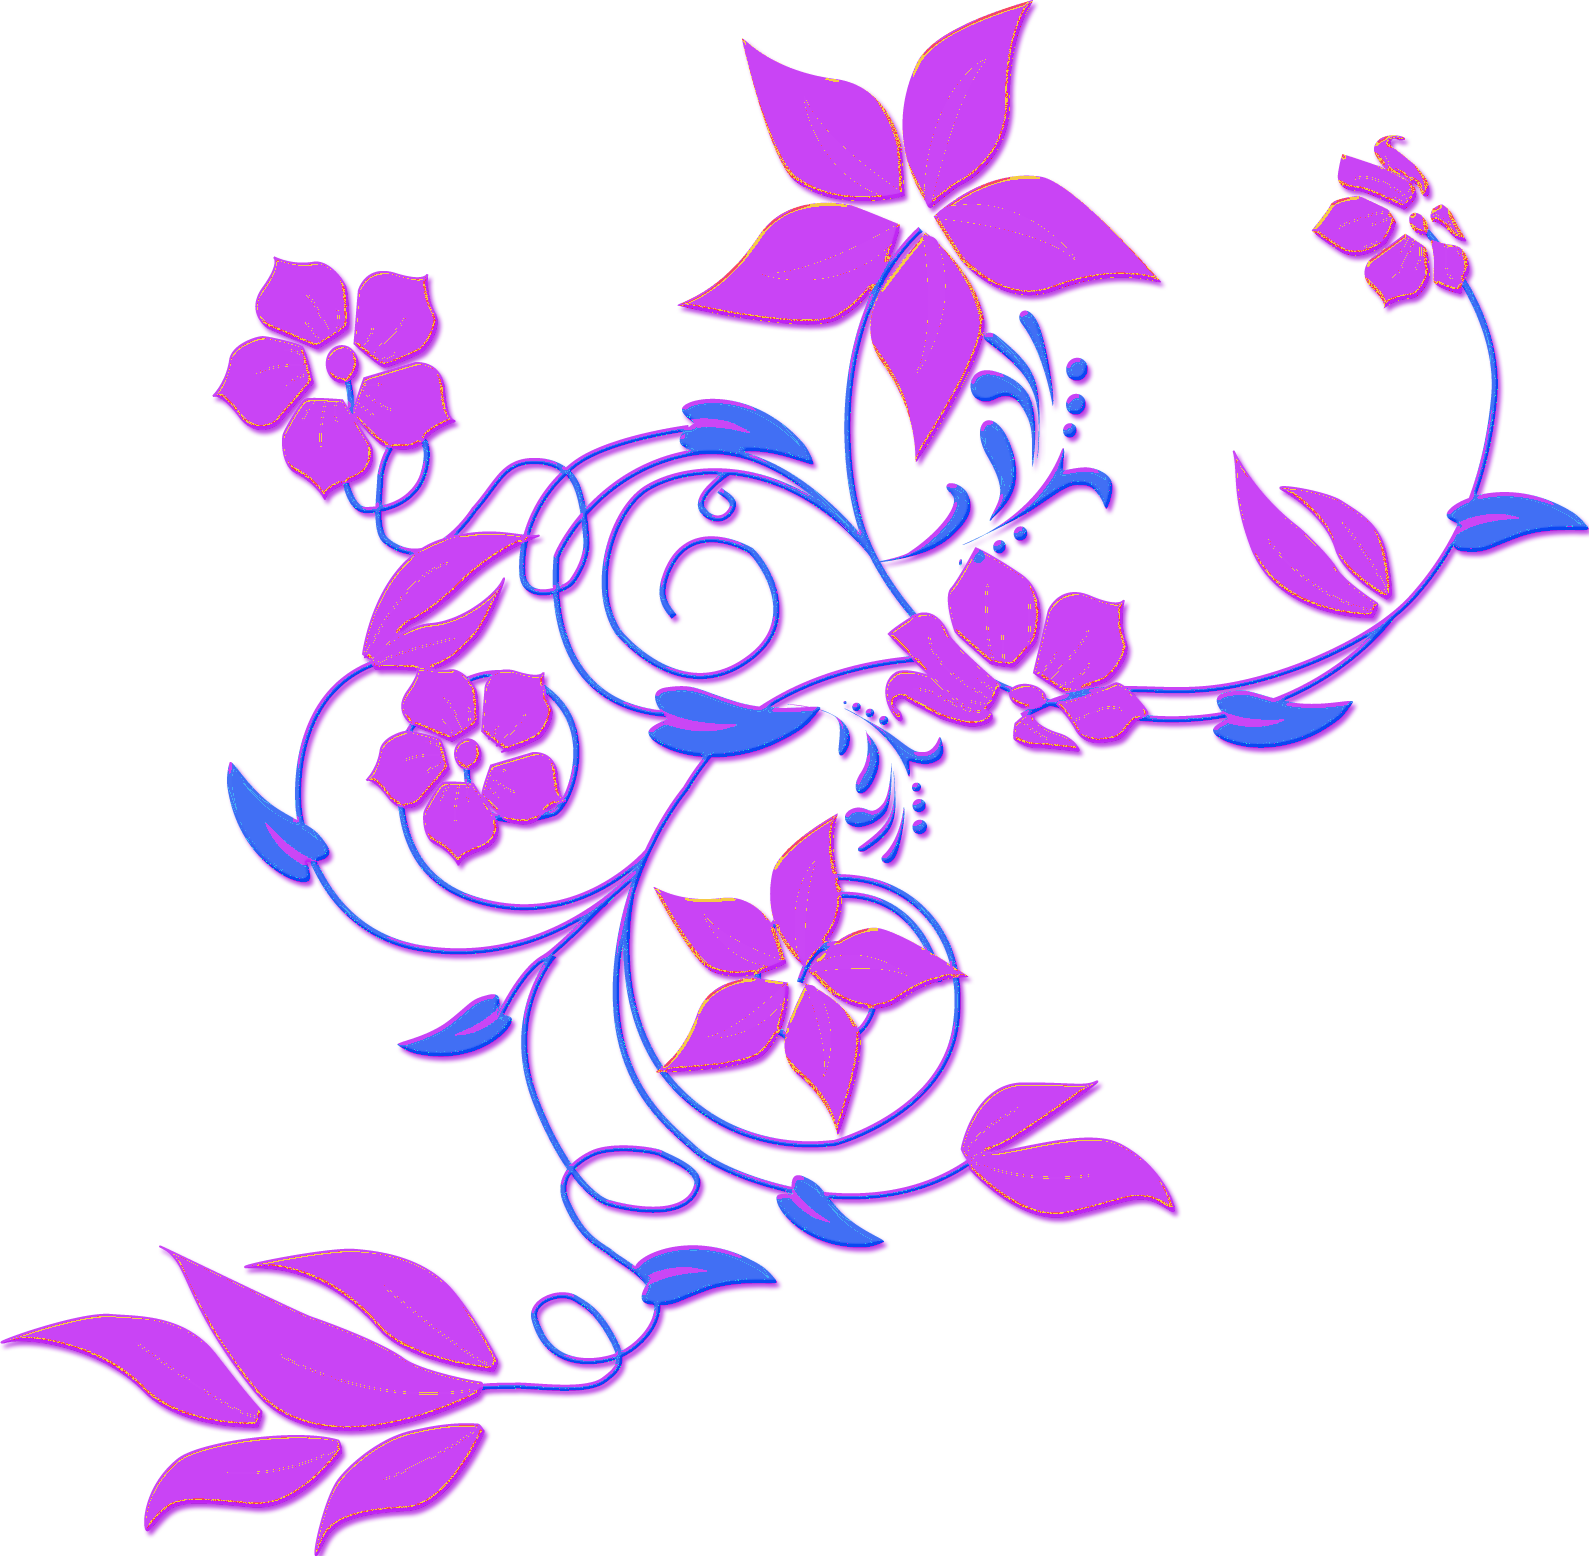 Flower 75 image vector clip art online, royalty free